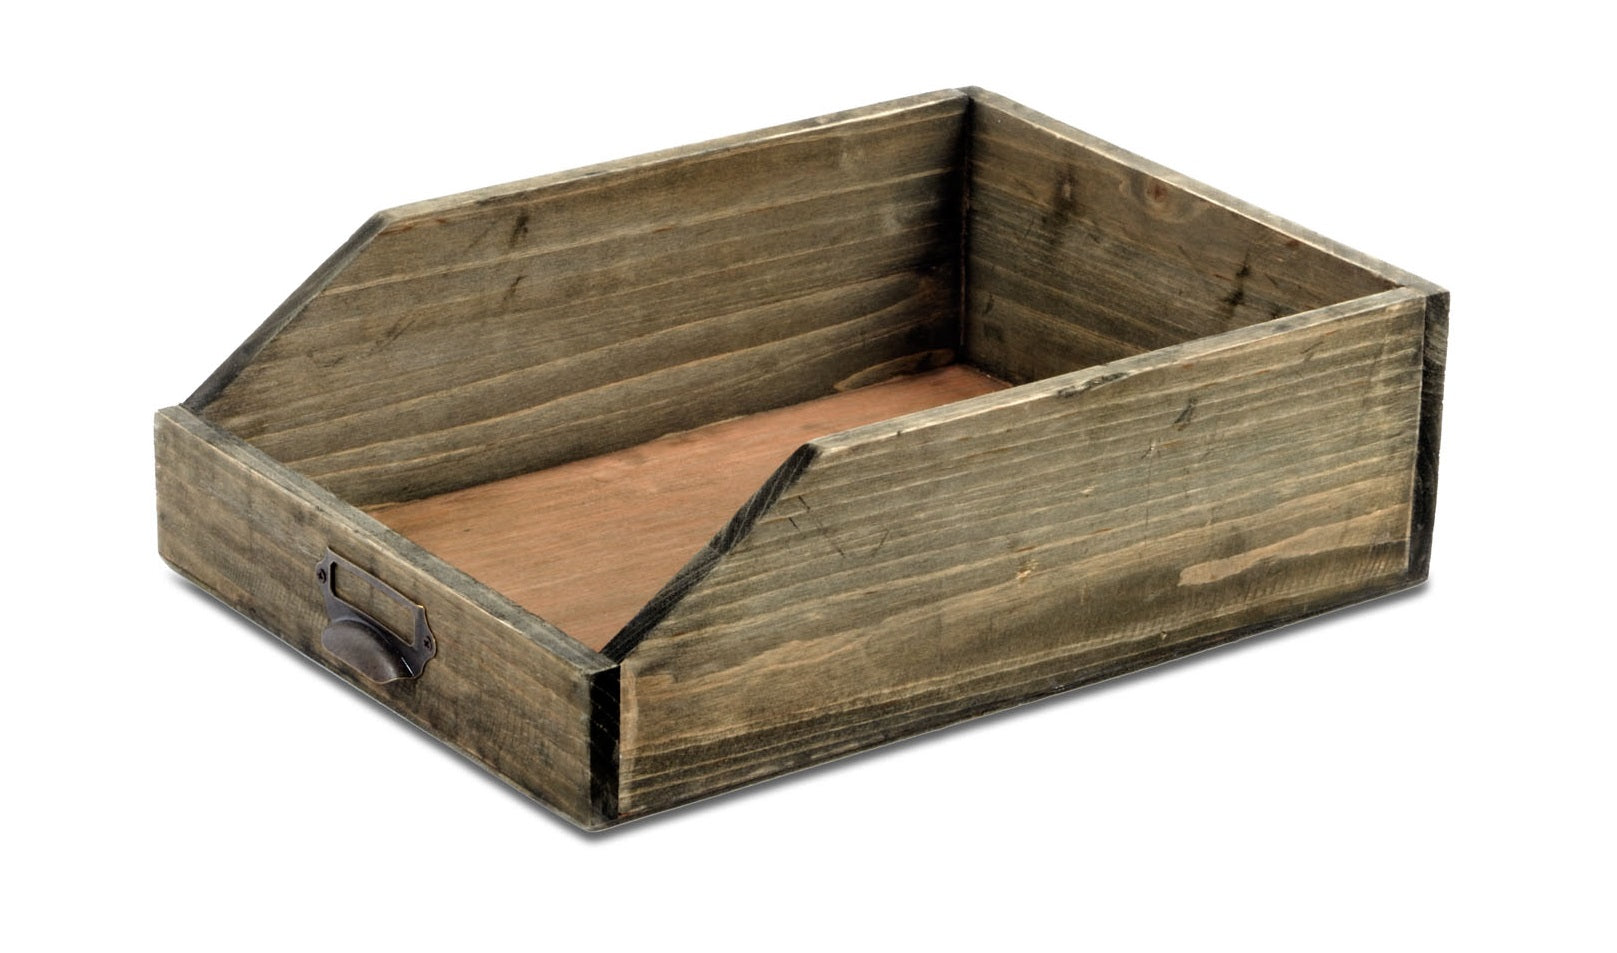 Wooden Paper Tray 25 x 34 x 10 cm, Gift Giving by Low Cost Gifts